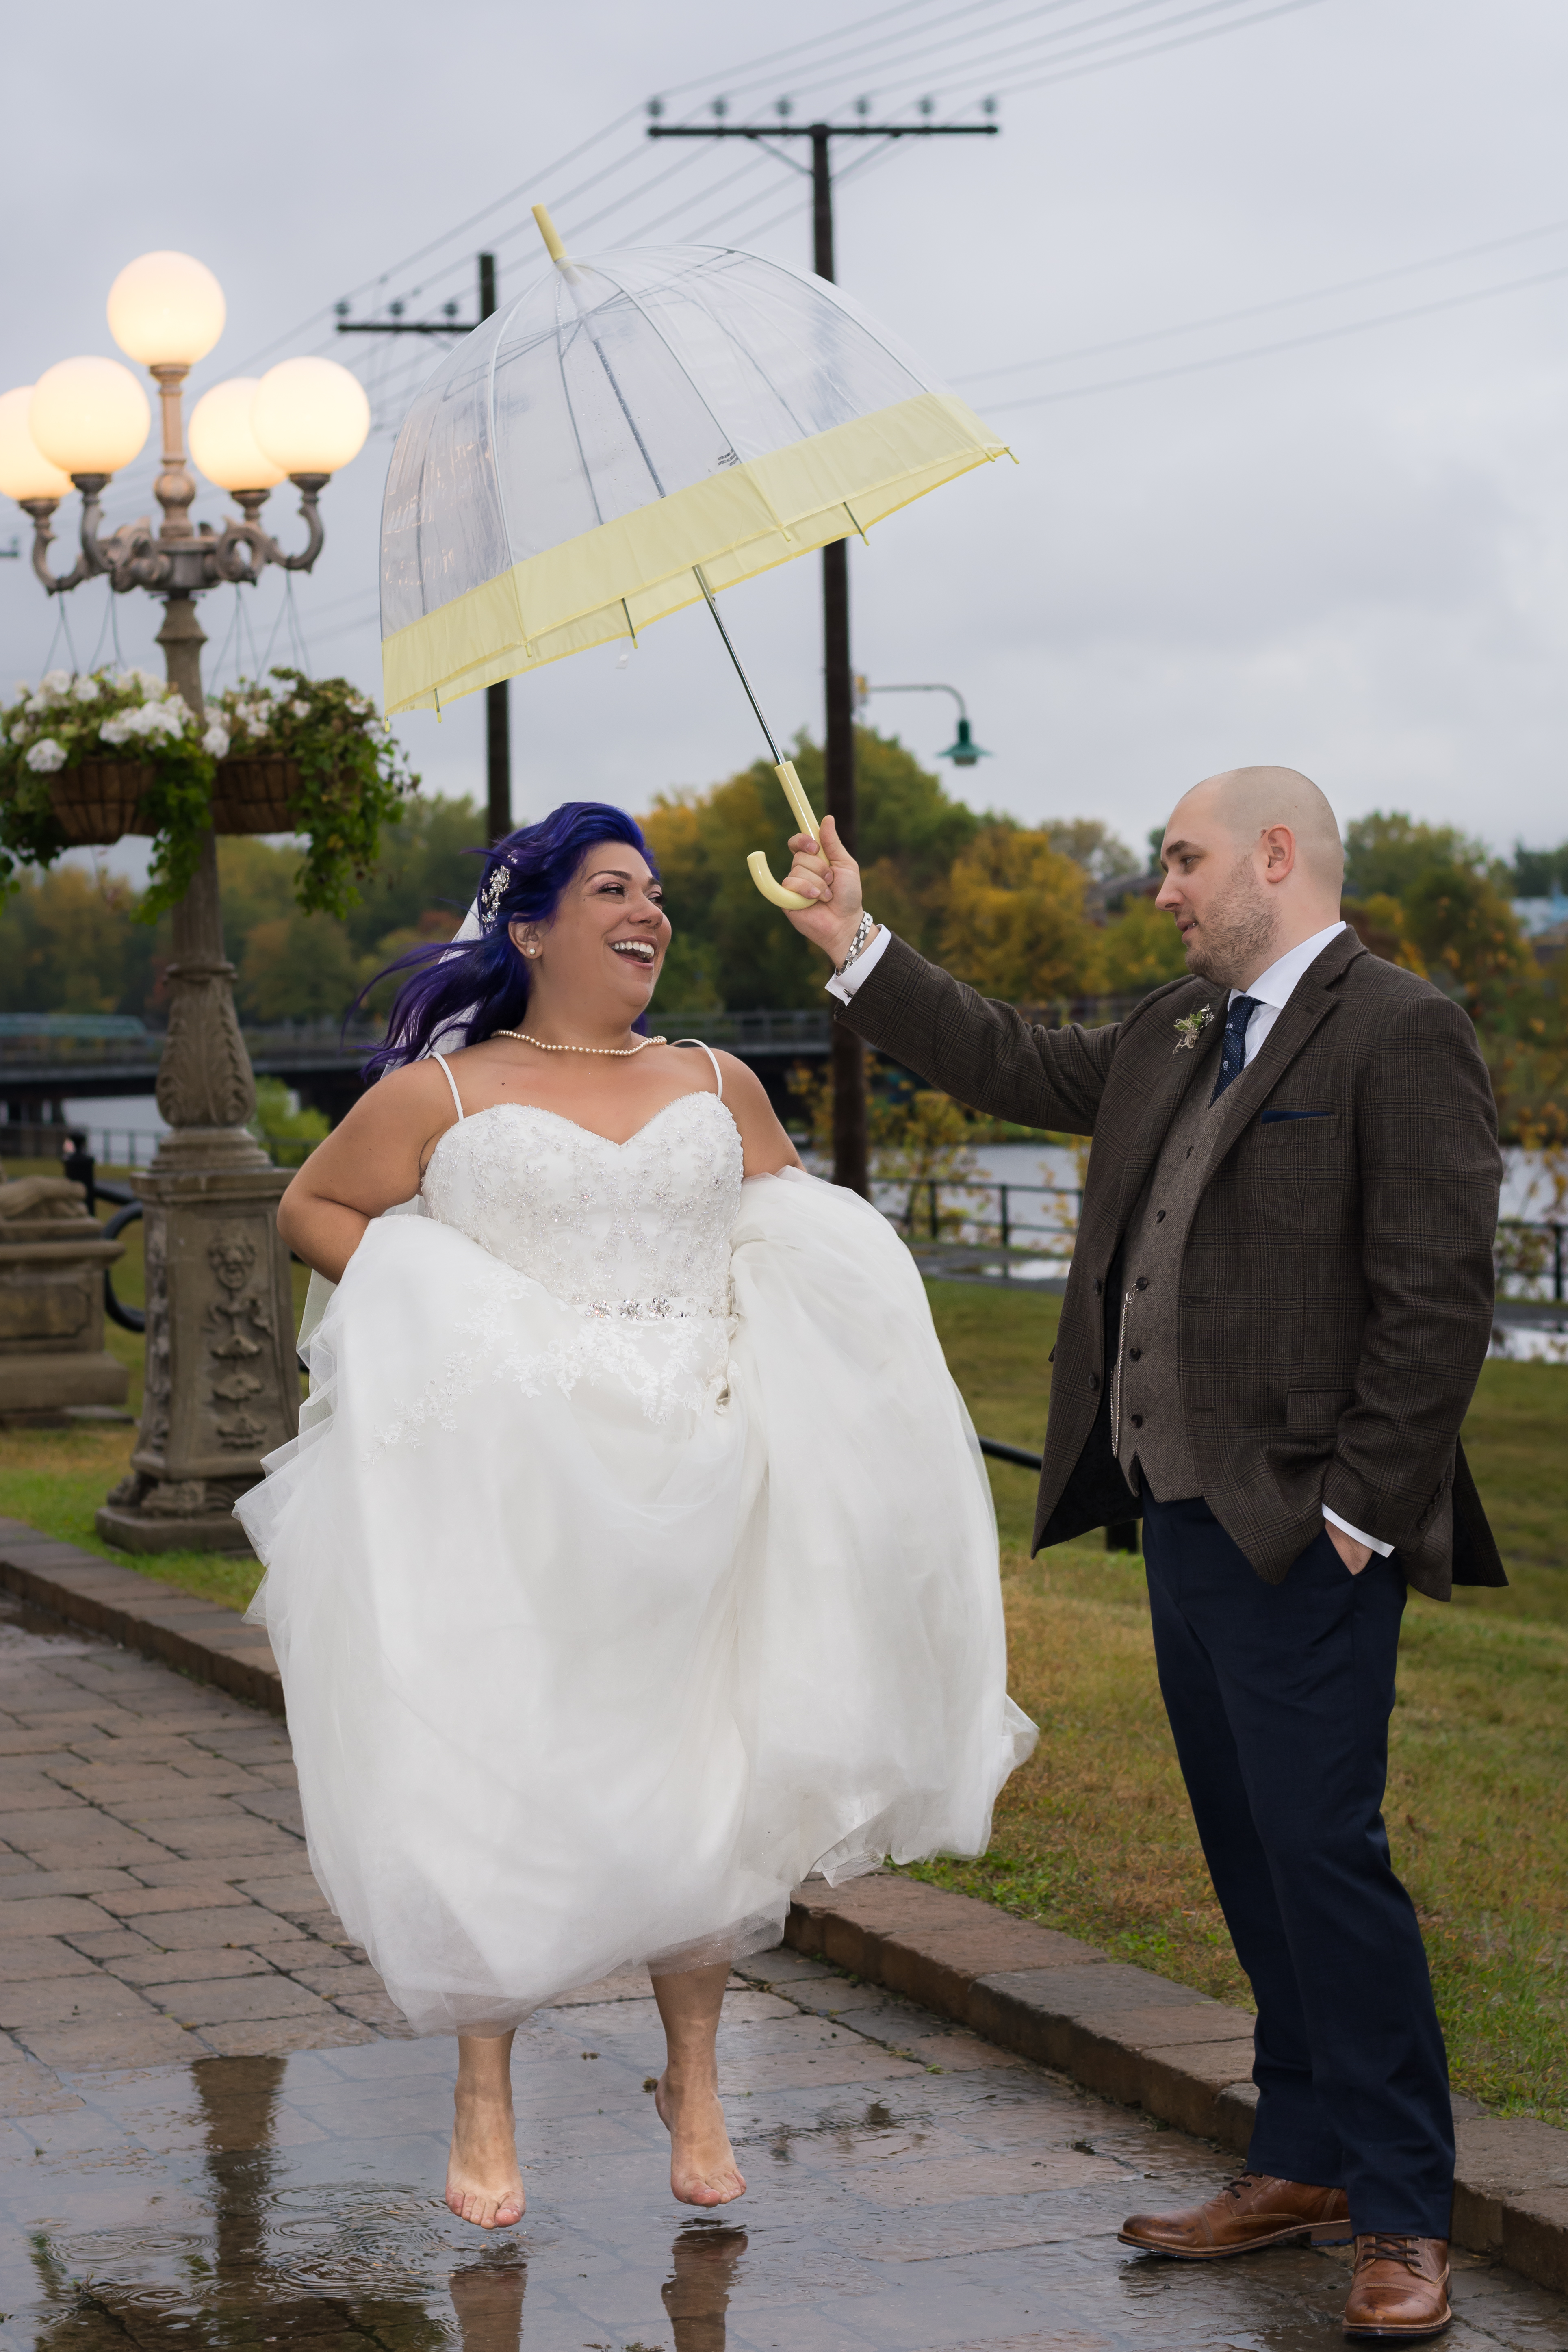 photos galerie mariages